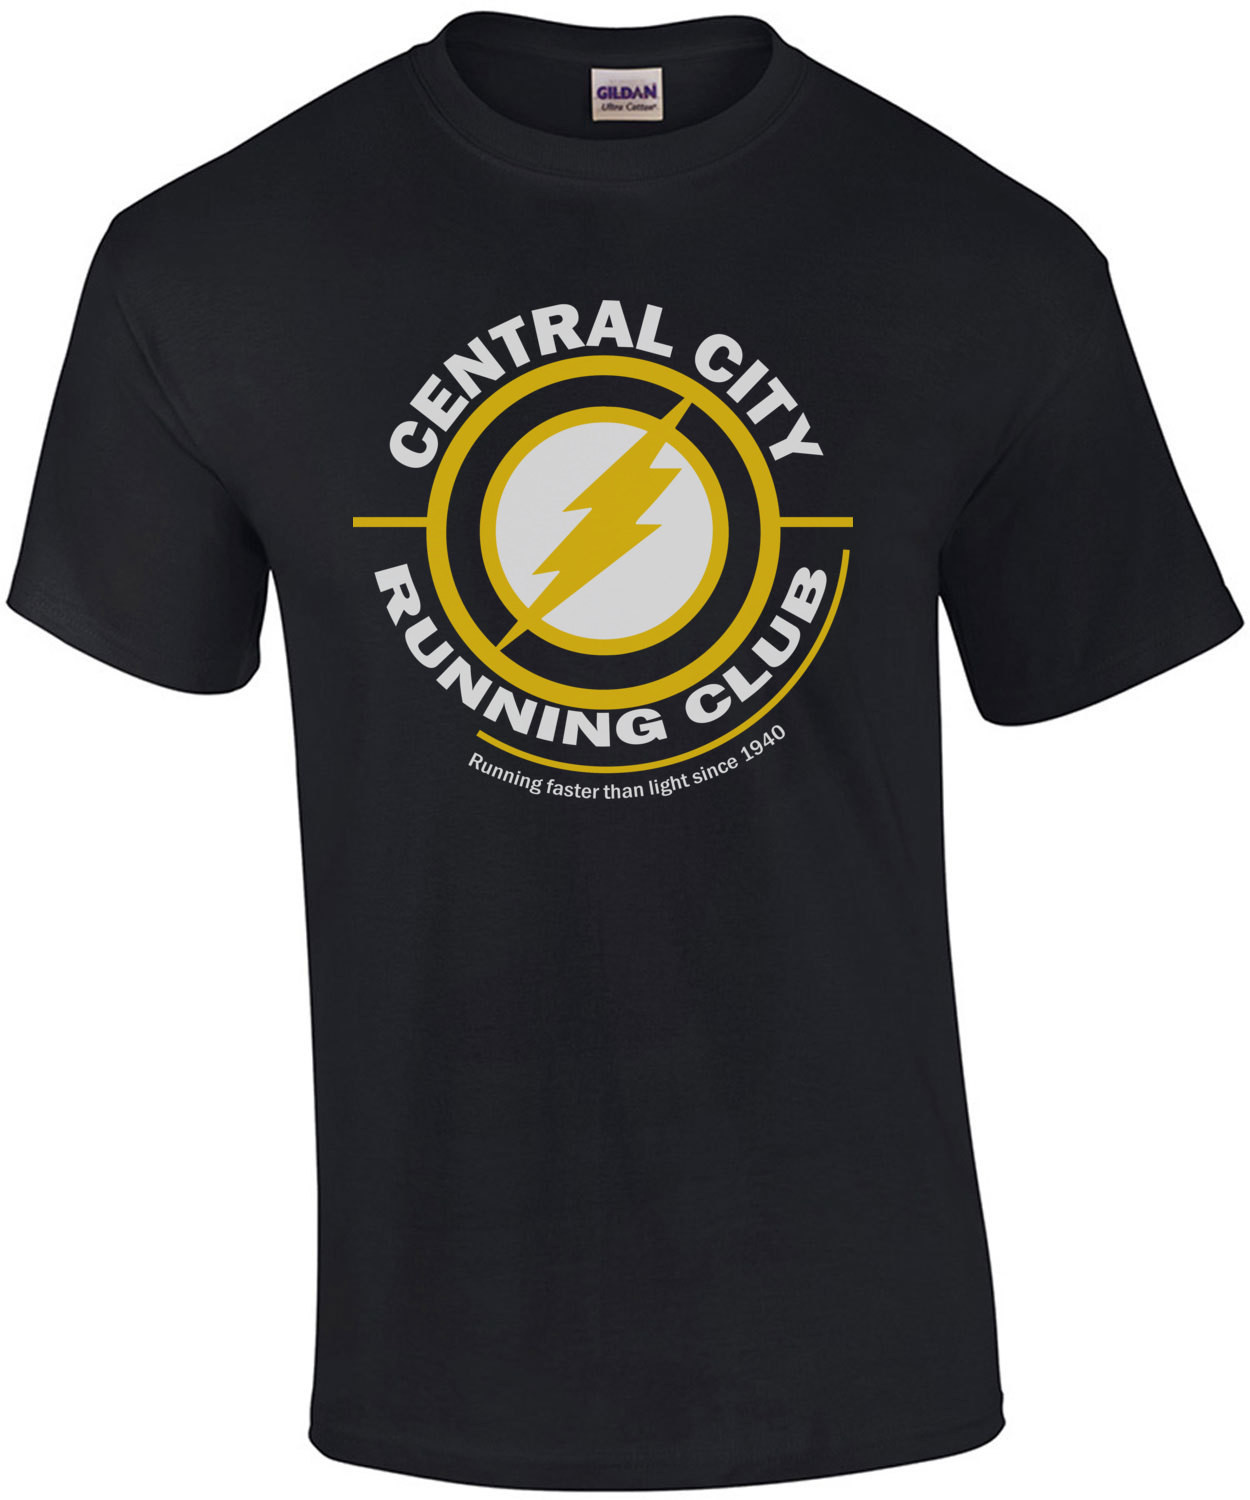 Central City Running Club - Running faster than light since 1940 - the flash t-shirt